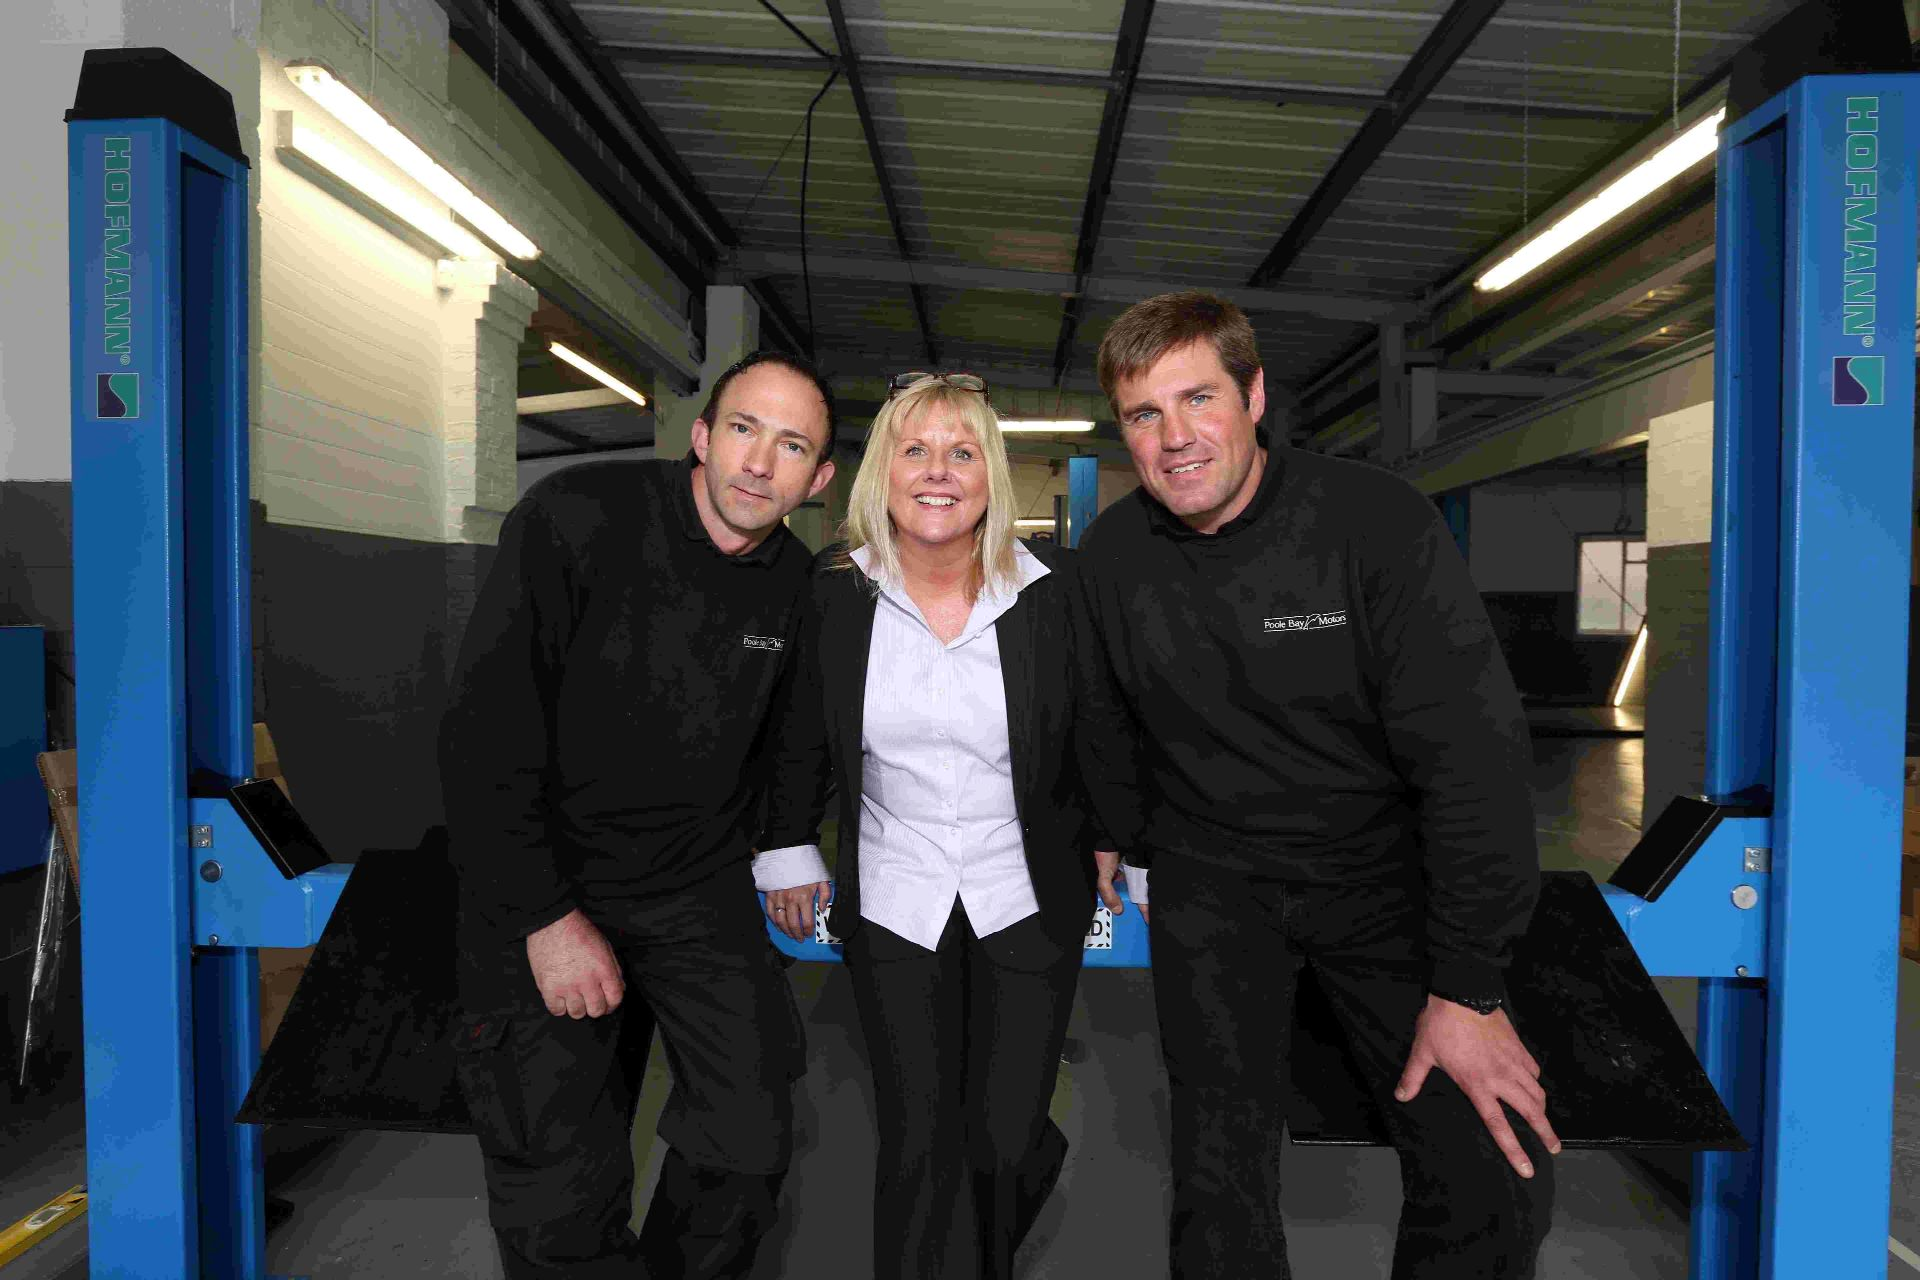 MOTORING ON: Workshop Manager Mark Franks, and directors Lisa Colegate and Scott Mackay of Poole Bay Motors at their new location